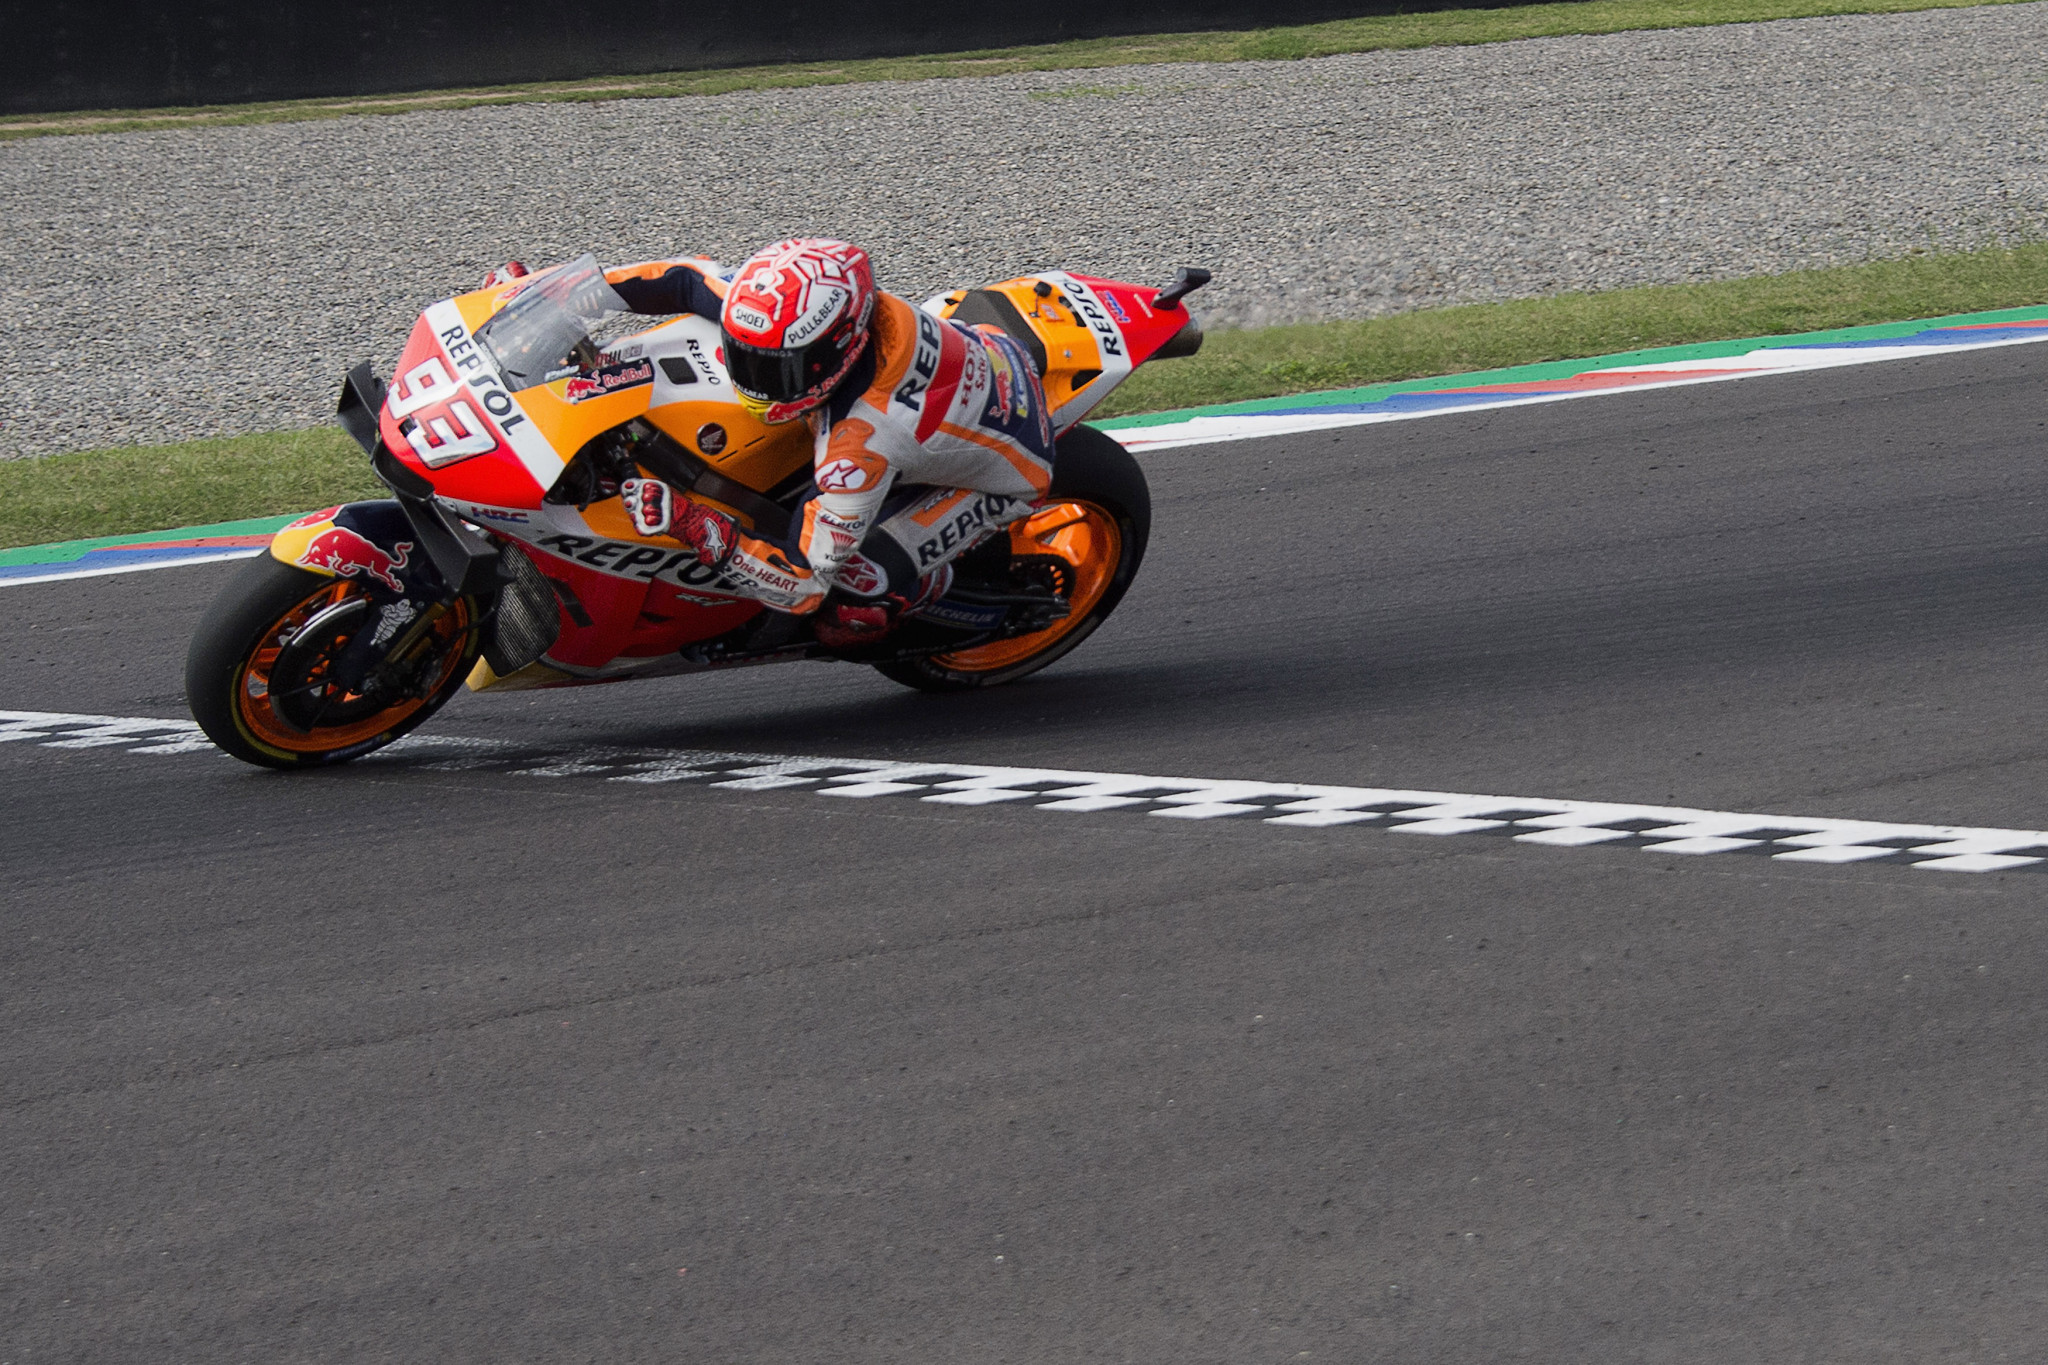 MotoGP's Argentine Grand Prix cancelled due to COVID-19